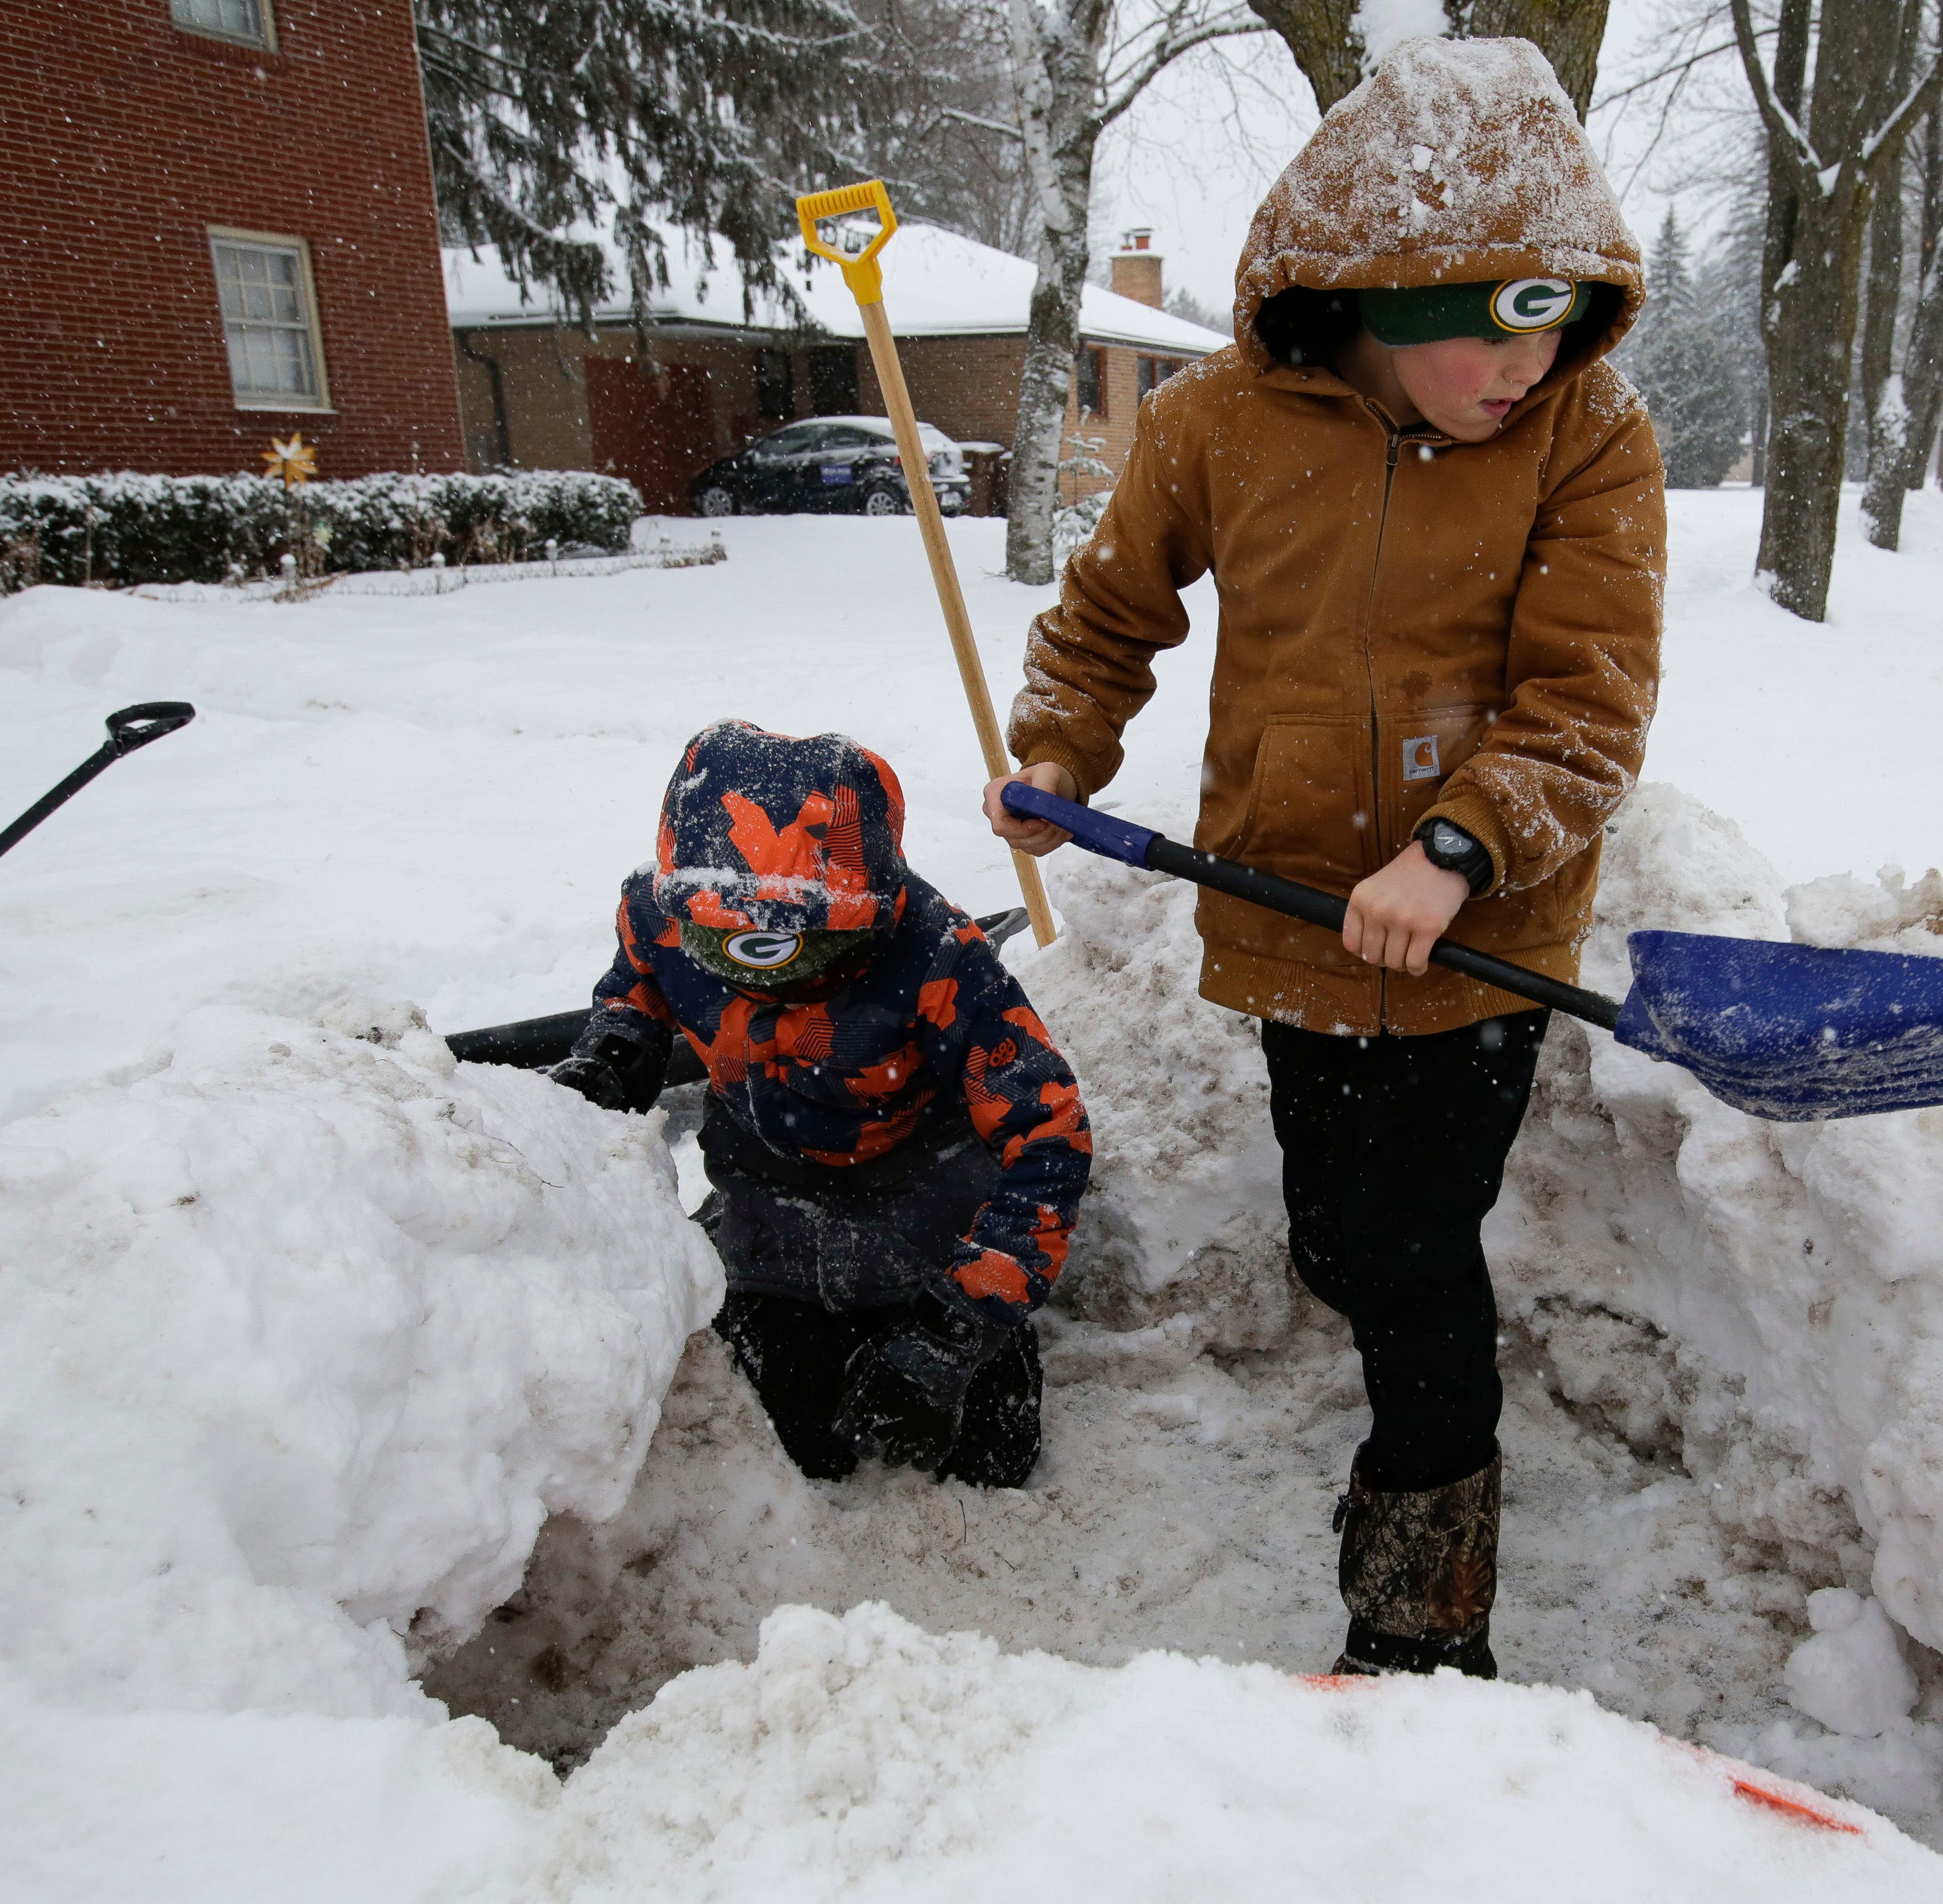 Wisconsin Rapids Public Schools add 15 minutes to each day to make up for cancellations